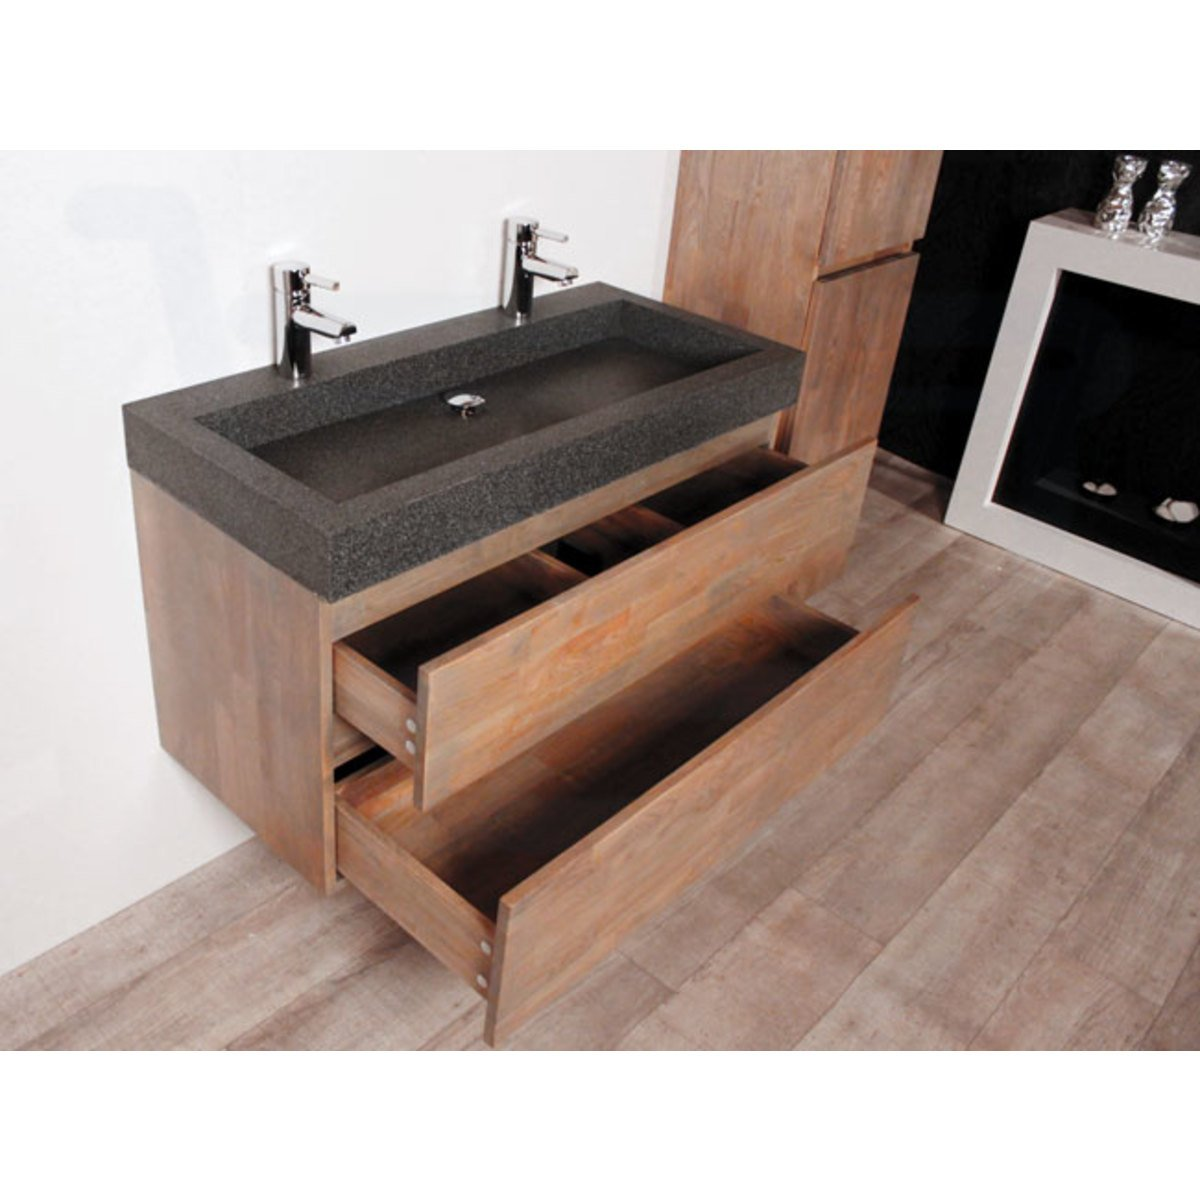 Best meuble double vasque 100 cm gallery awesome for Meuble 2 vasques 110 cm